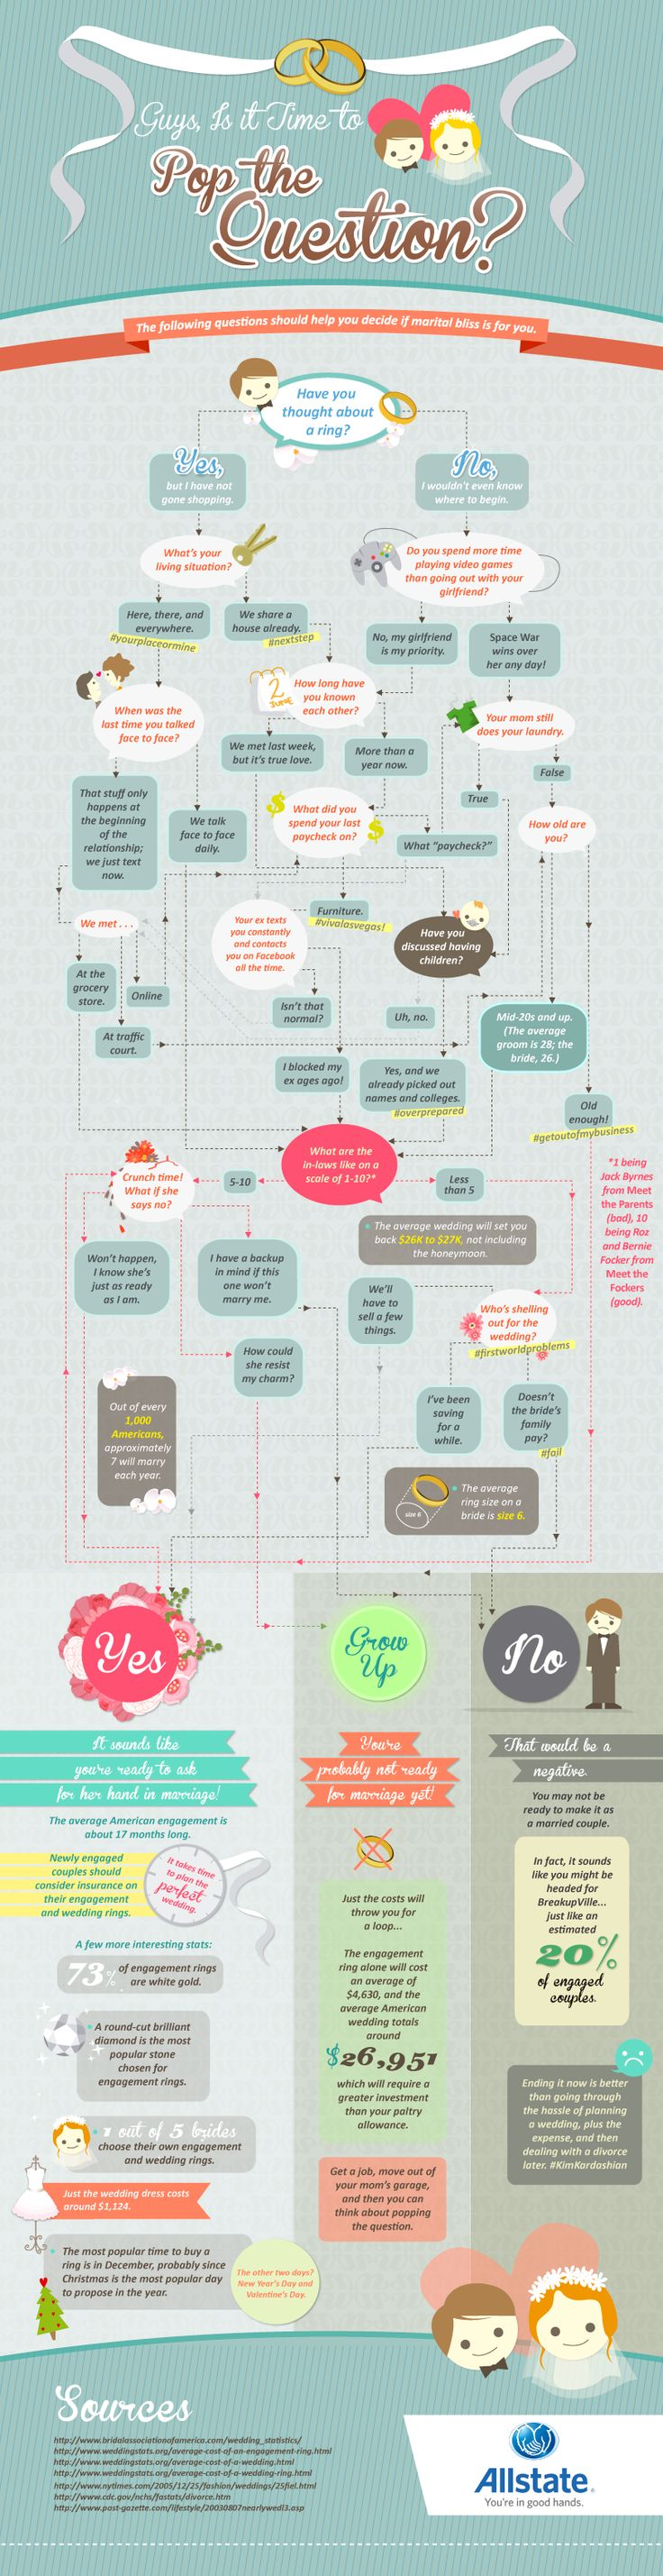 If you are planning your engagement then you must see this #infographic